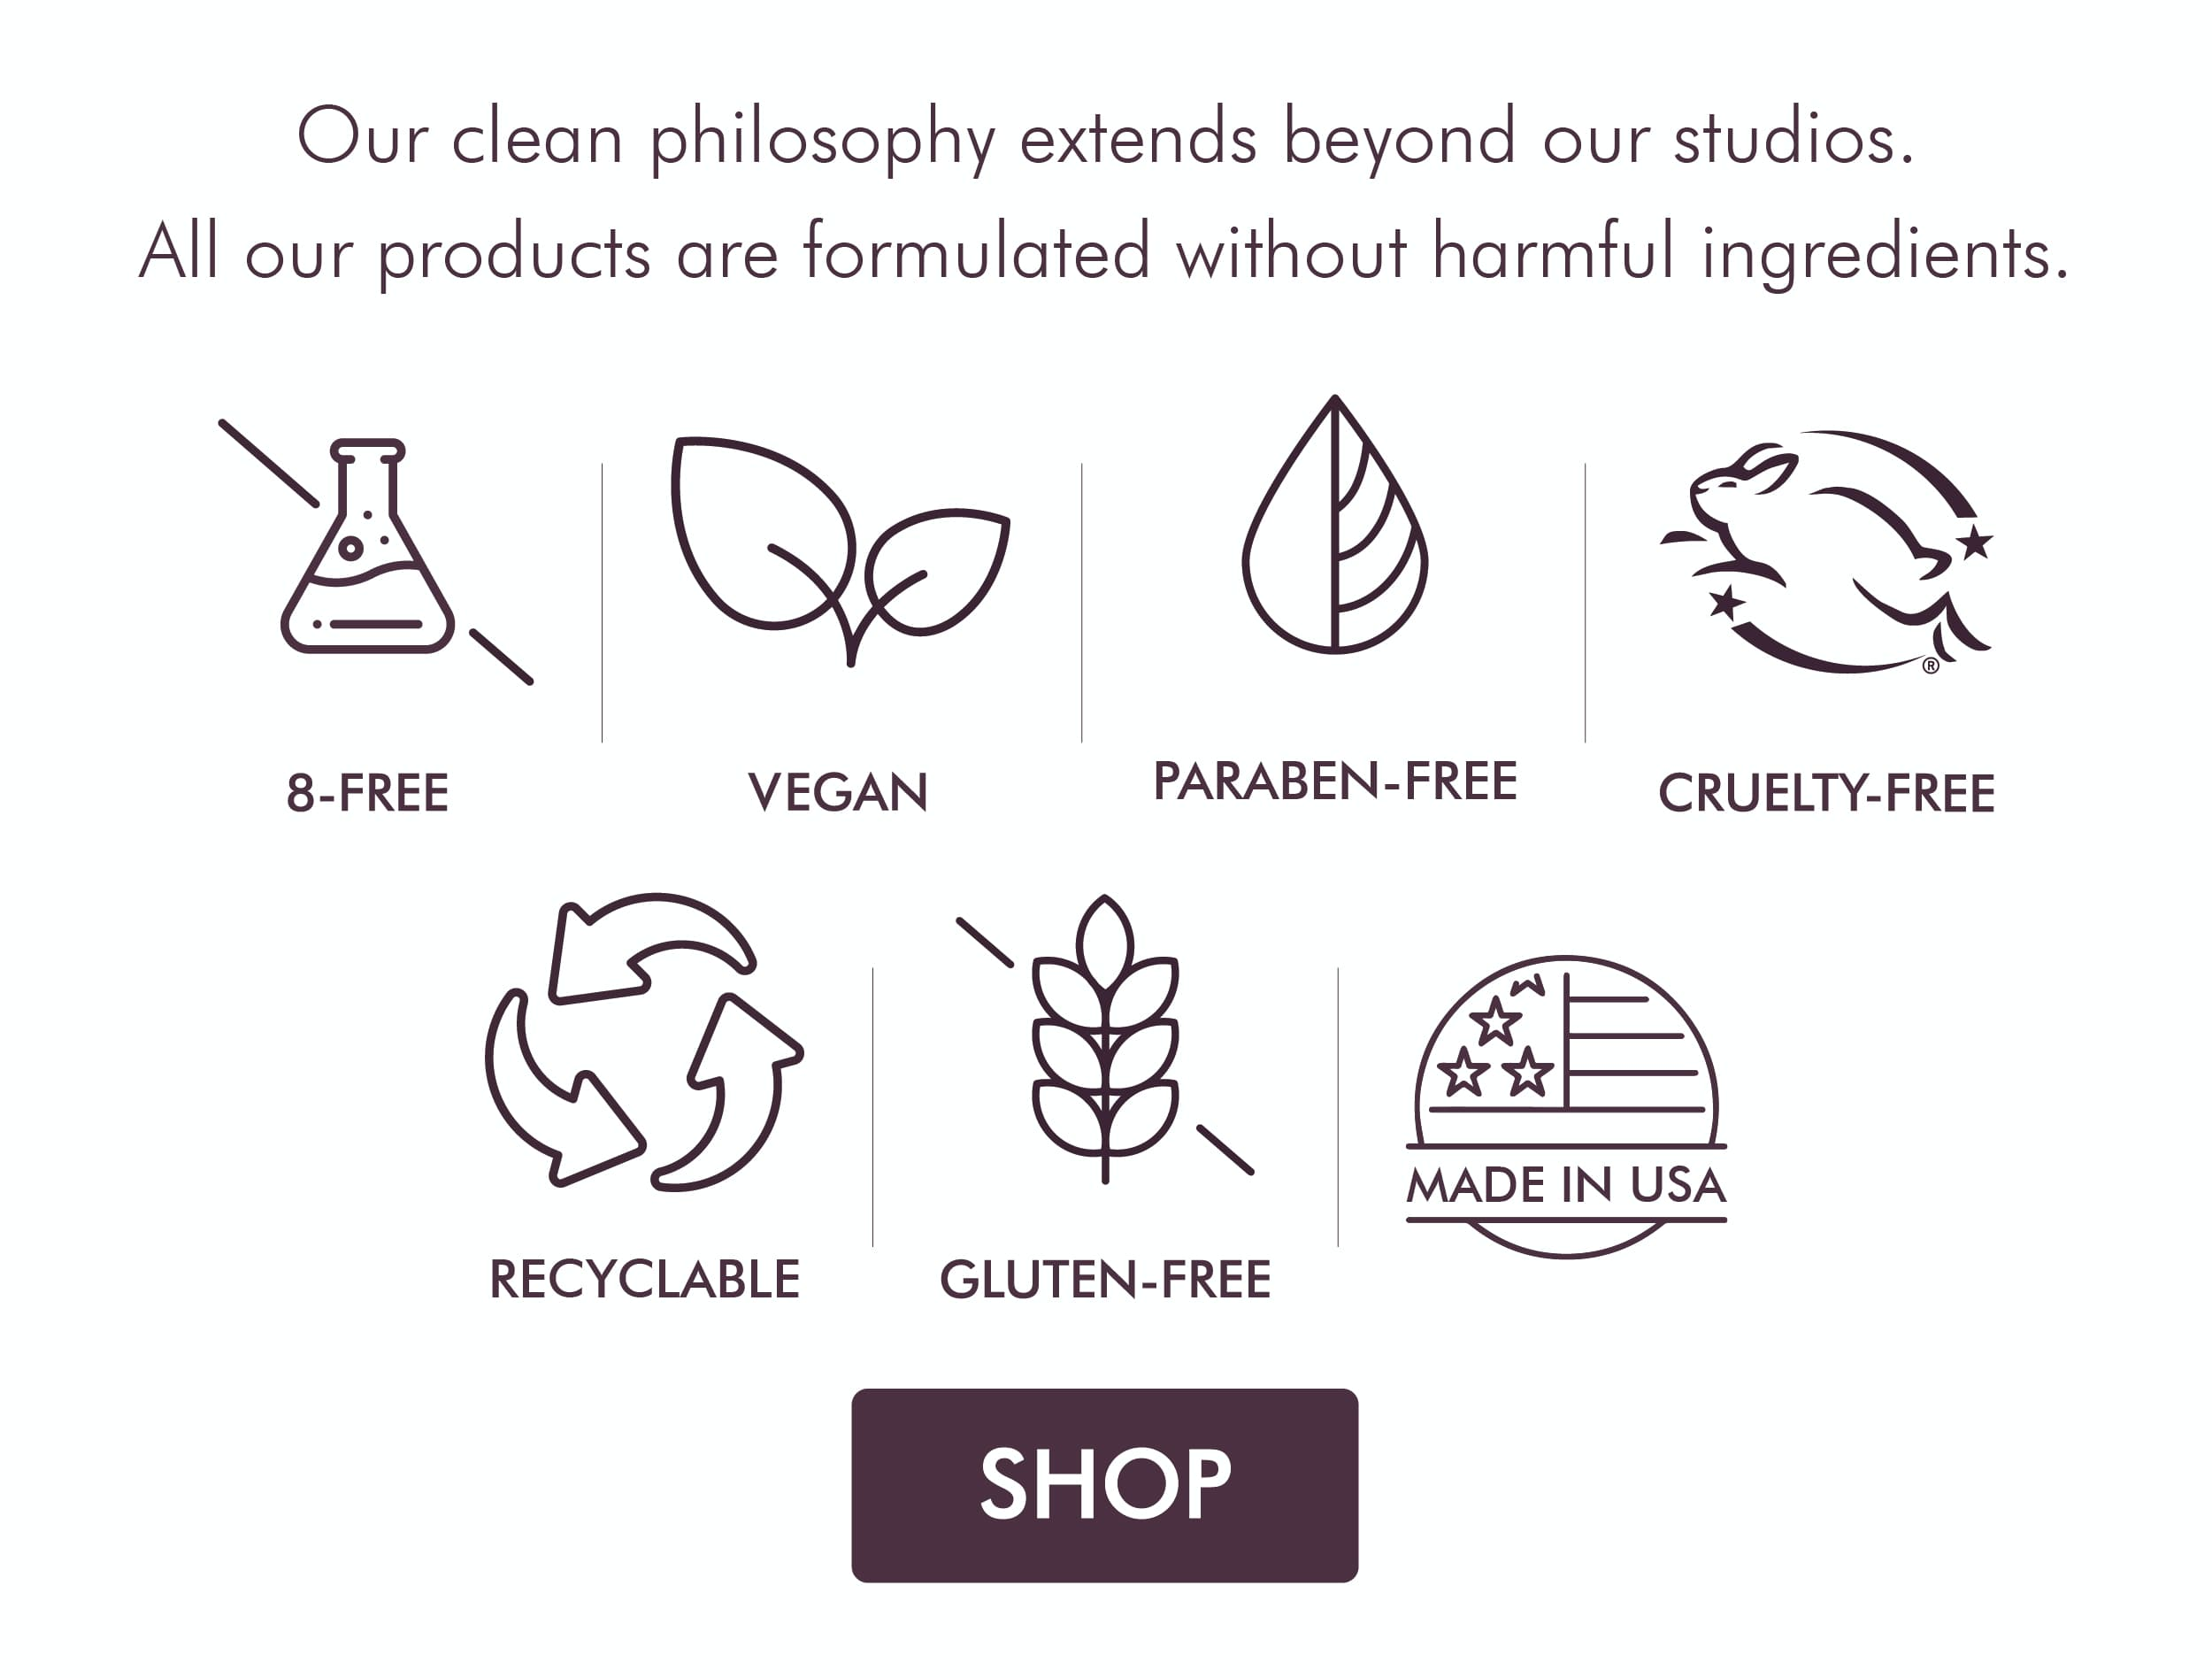 All Our Products Are Formulated Without Harmful Ingredients